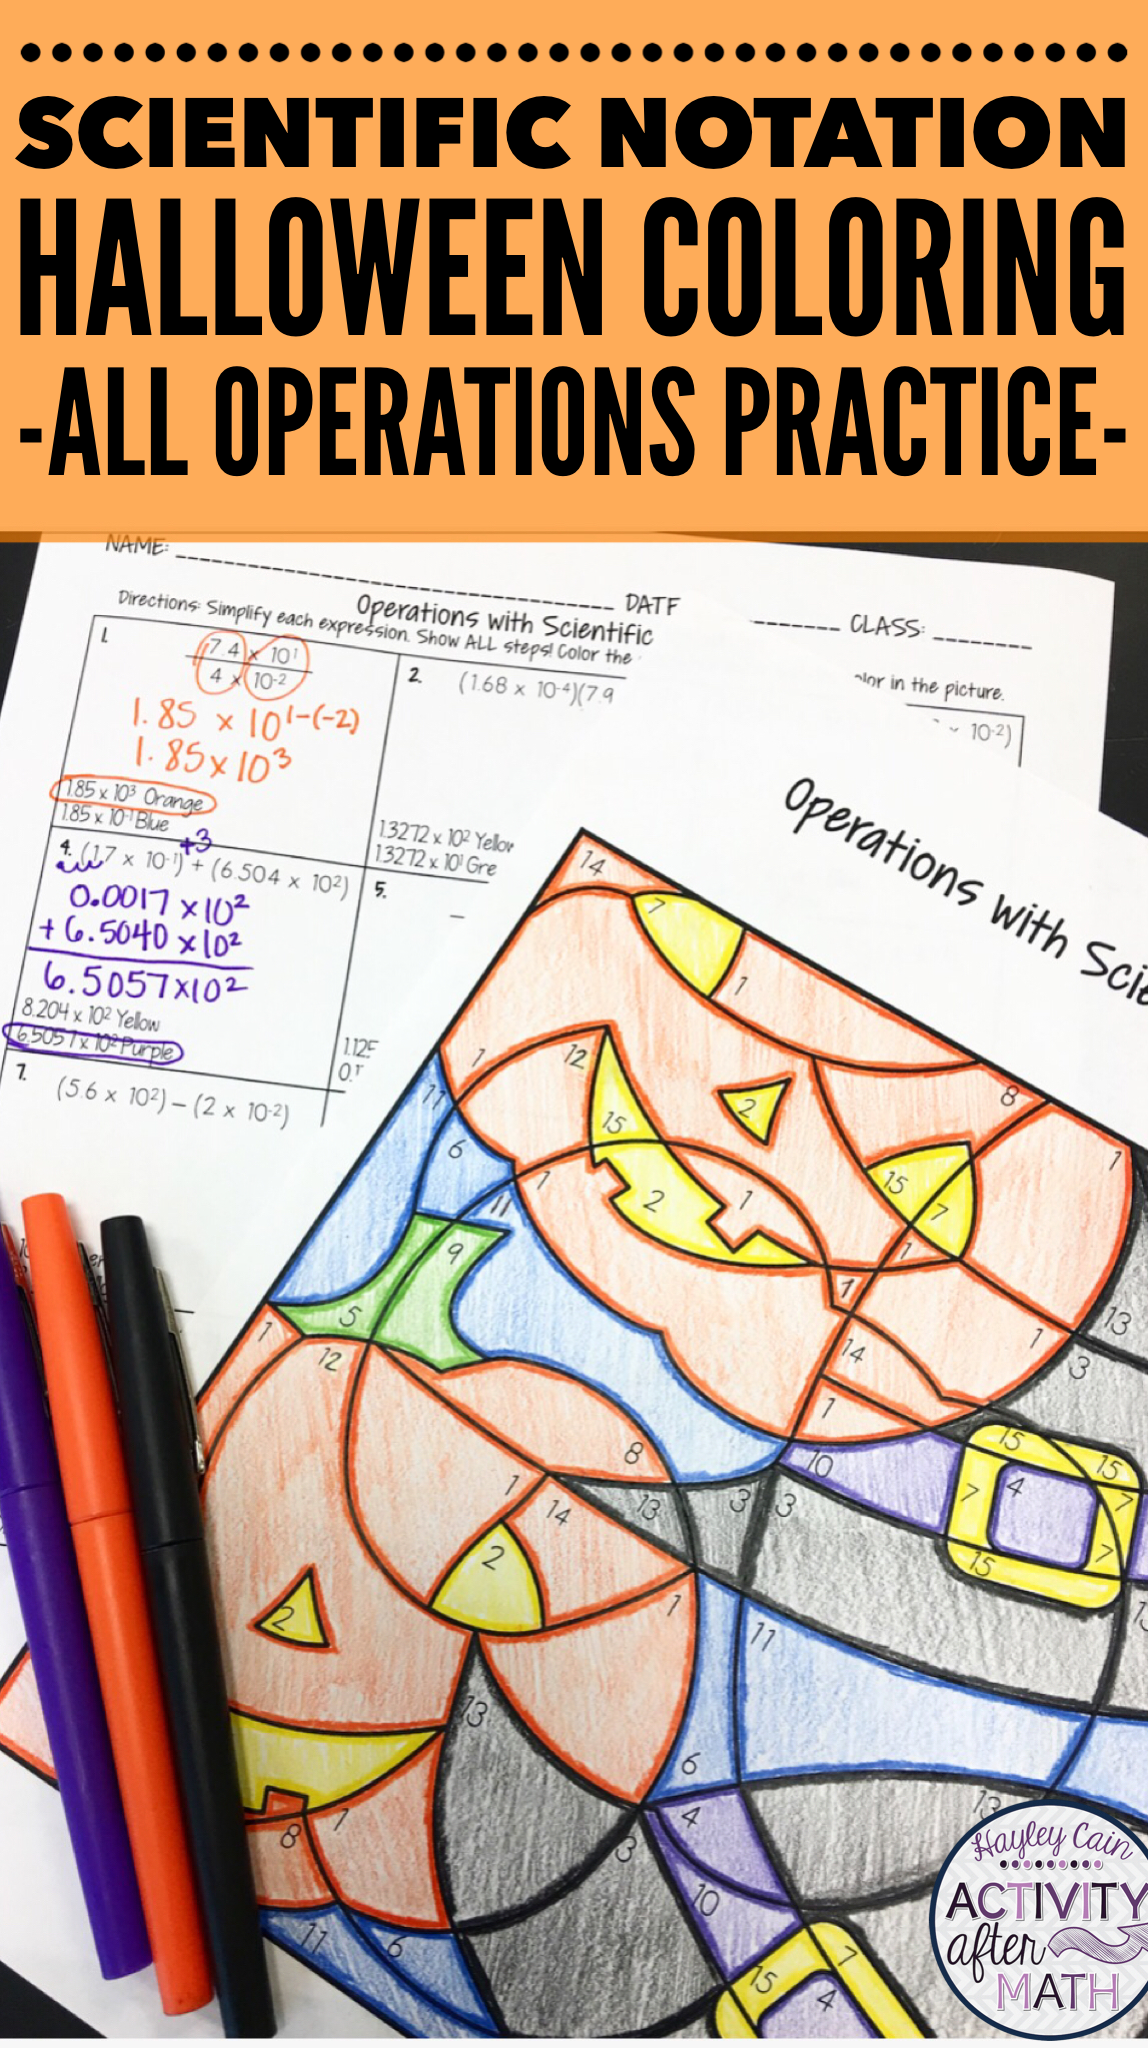 Operations With Scientific Notation Halloween Math Coloring Activity Students Wil Scientific Notation Scientific Notation Activities Halloween Math Activities [ 2048 x 1148 Pixel ]